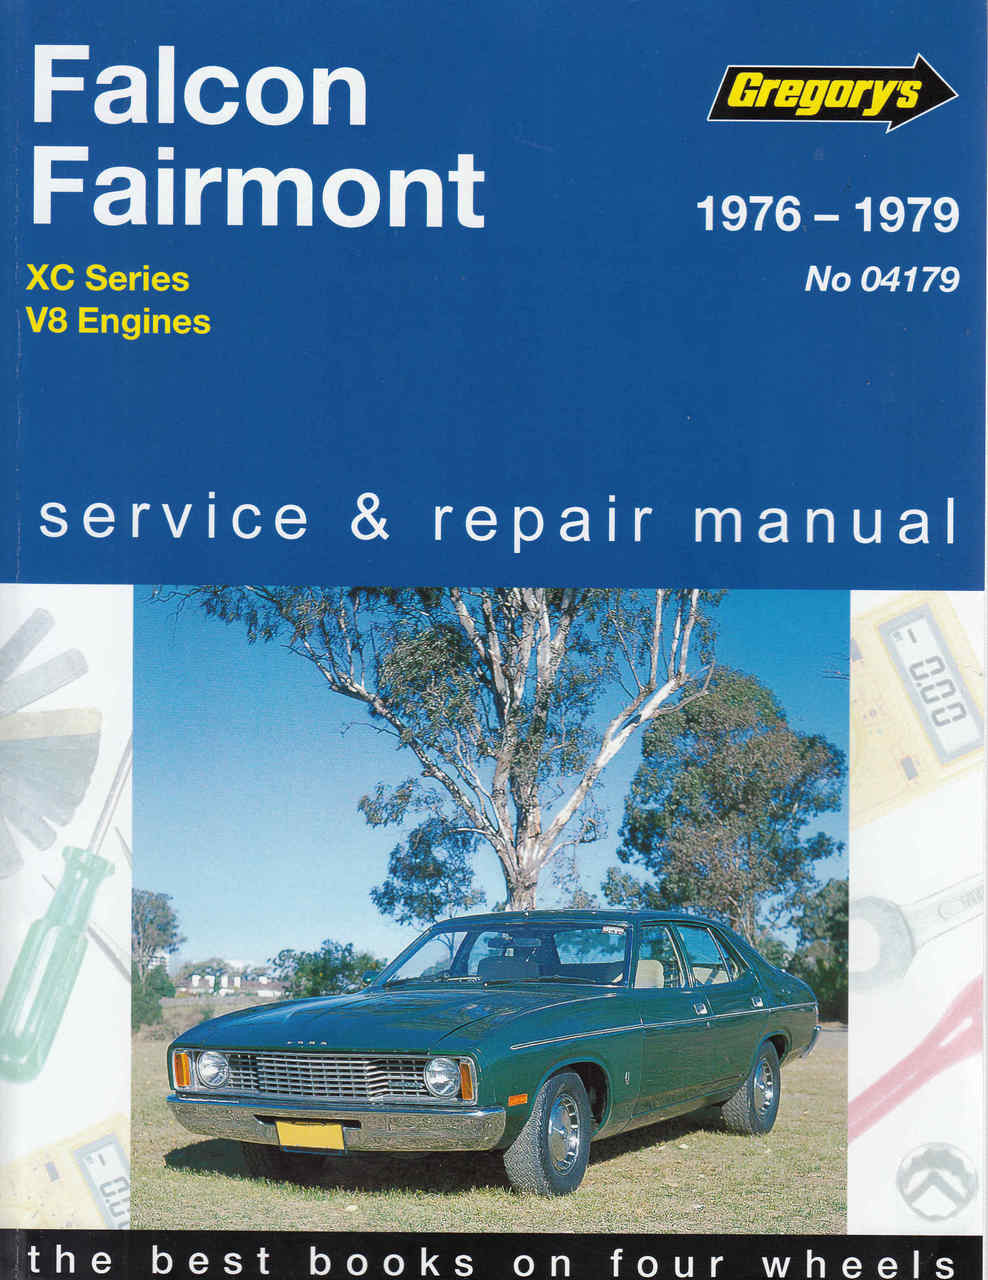 Ford Falcon Fairmont XC 8 Cylinder 1976 - 1979 Workshop Manual  (9780855664572) (front ...